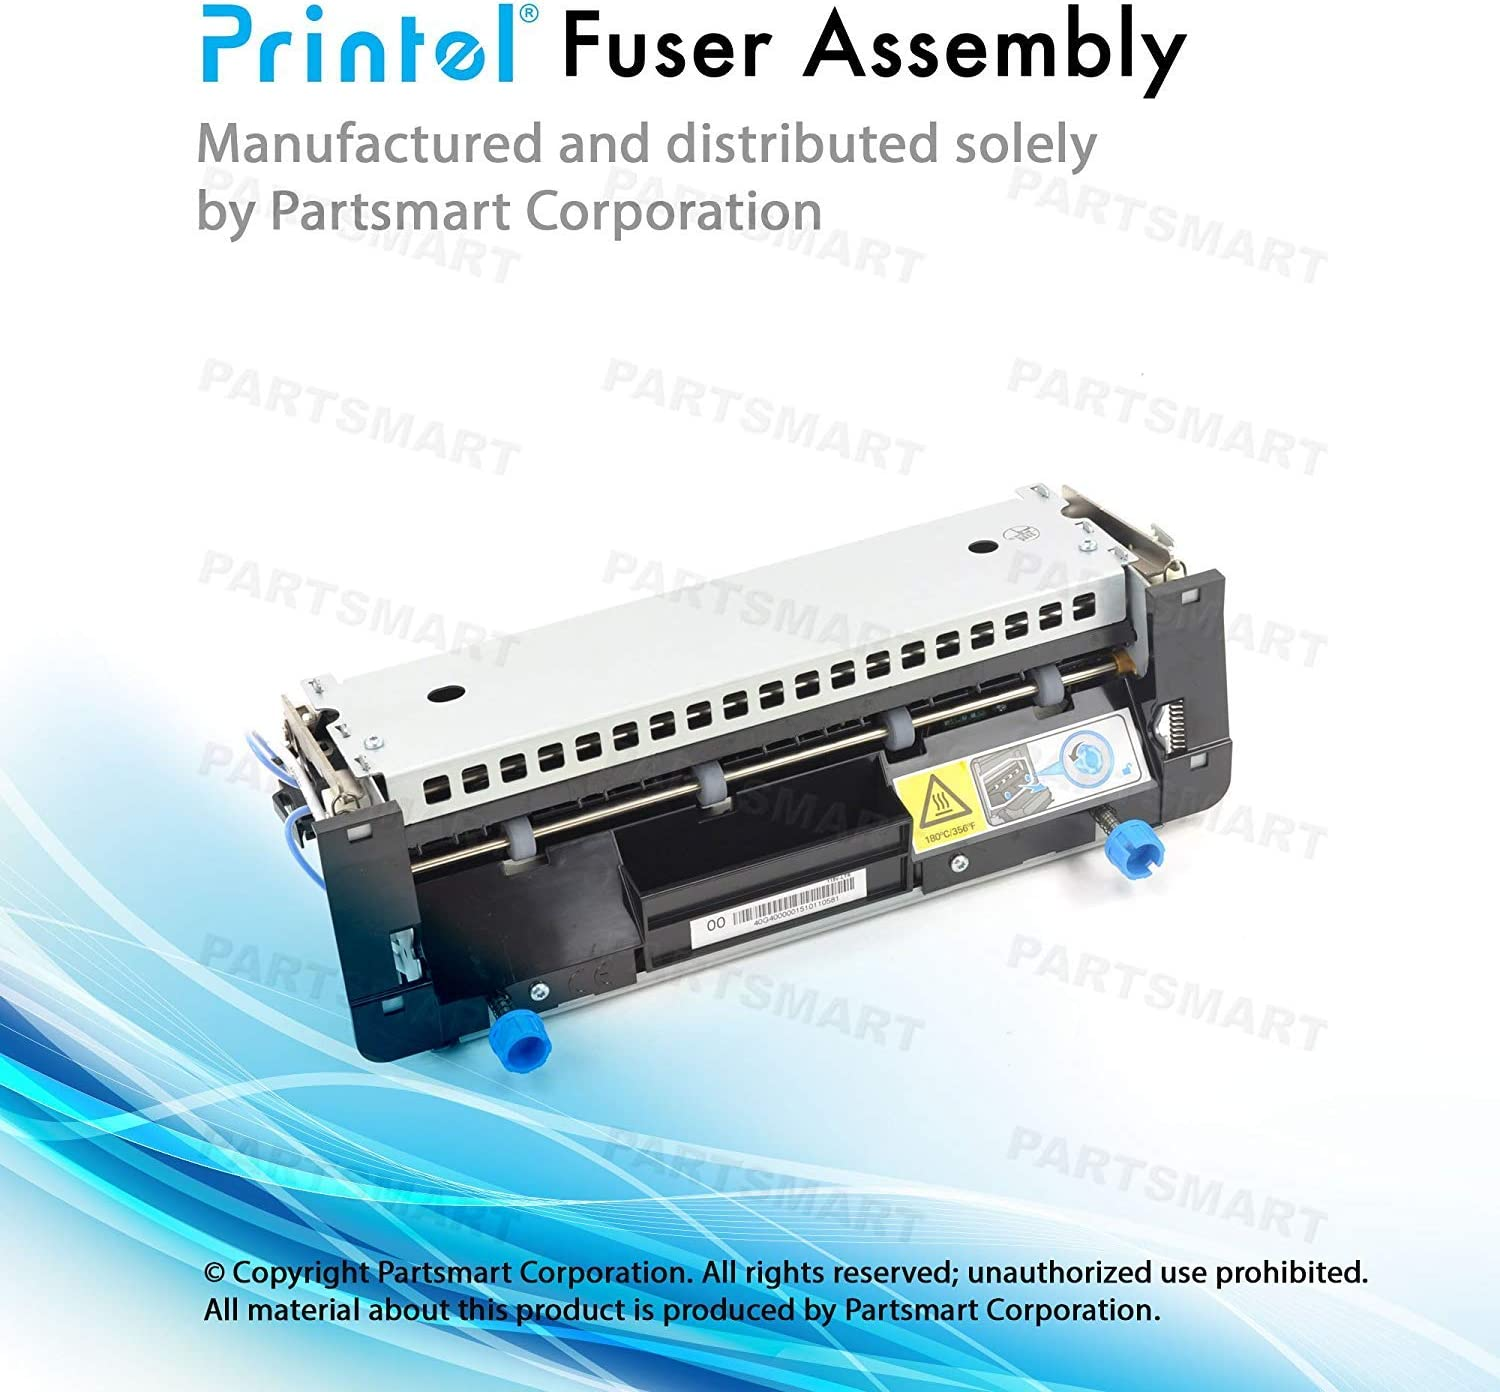 Printel Compatible 40X7743 Fuser Assembly アイテム勢ぞろい for MS8 110V Lexmark 新品■送料無料■